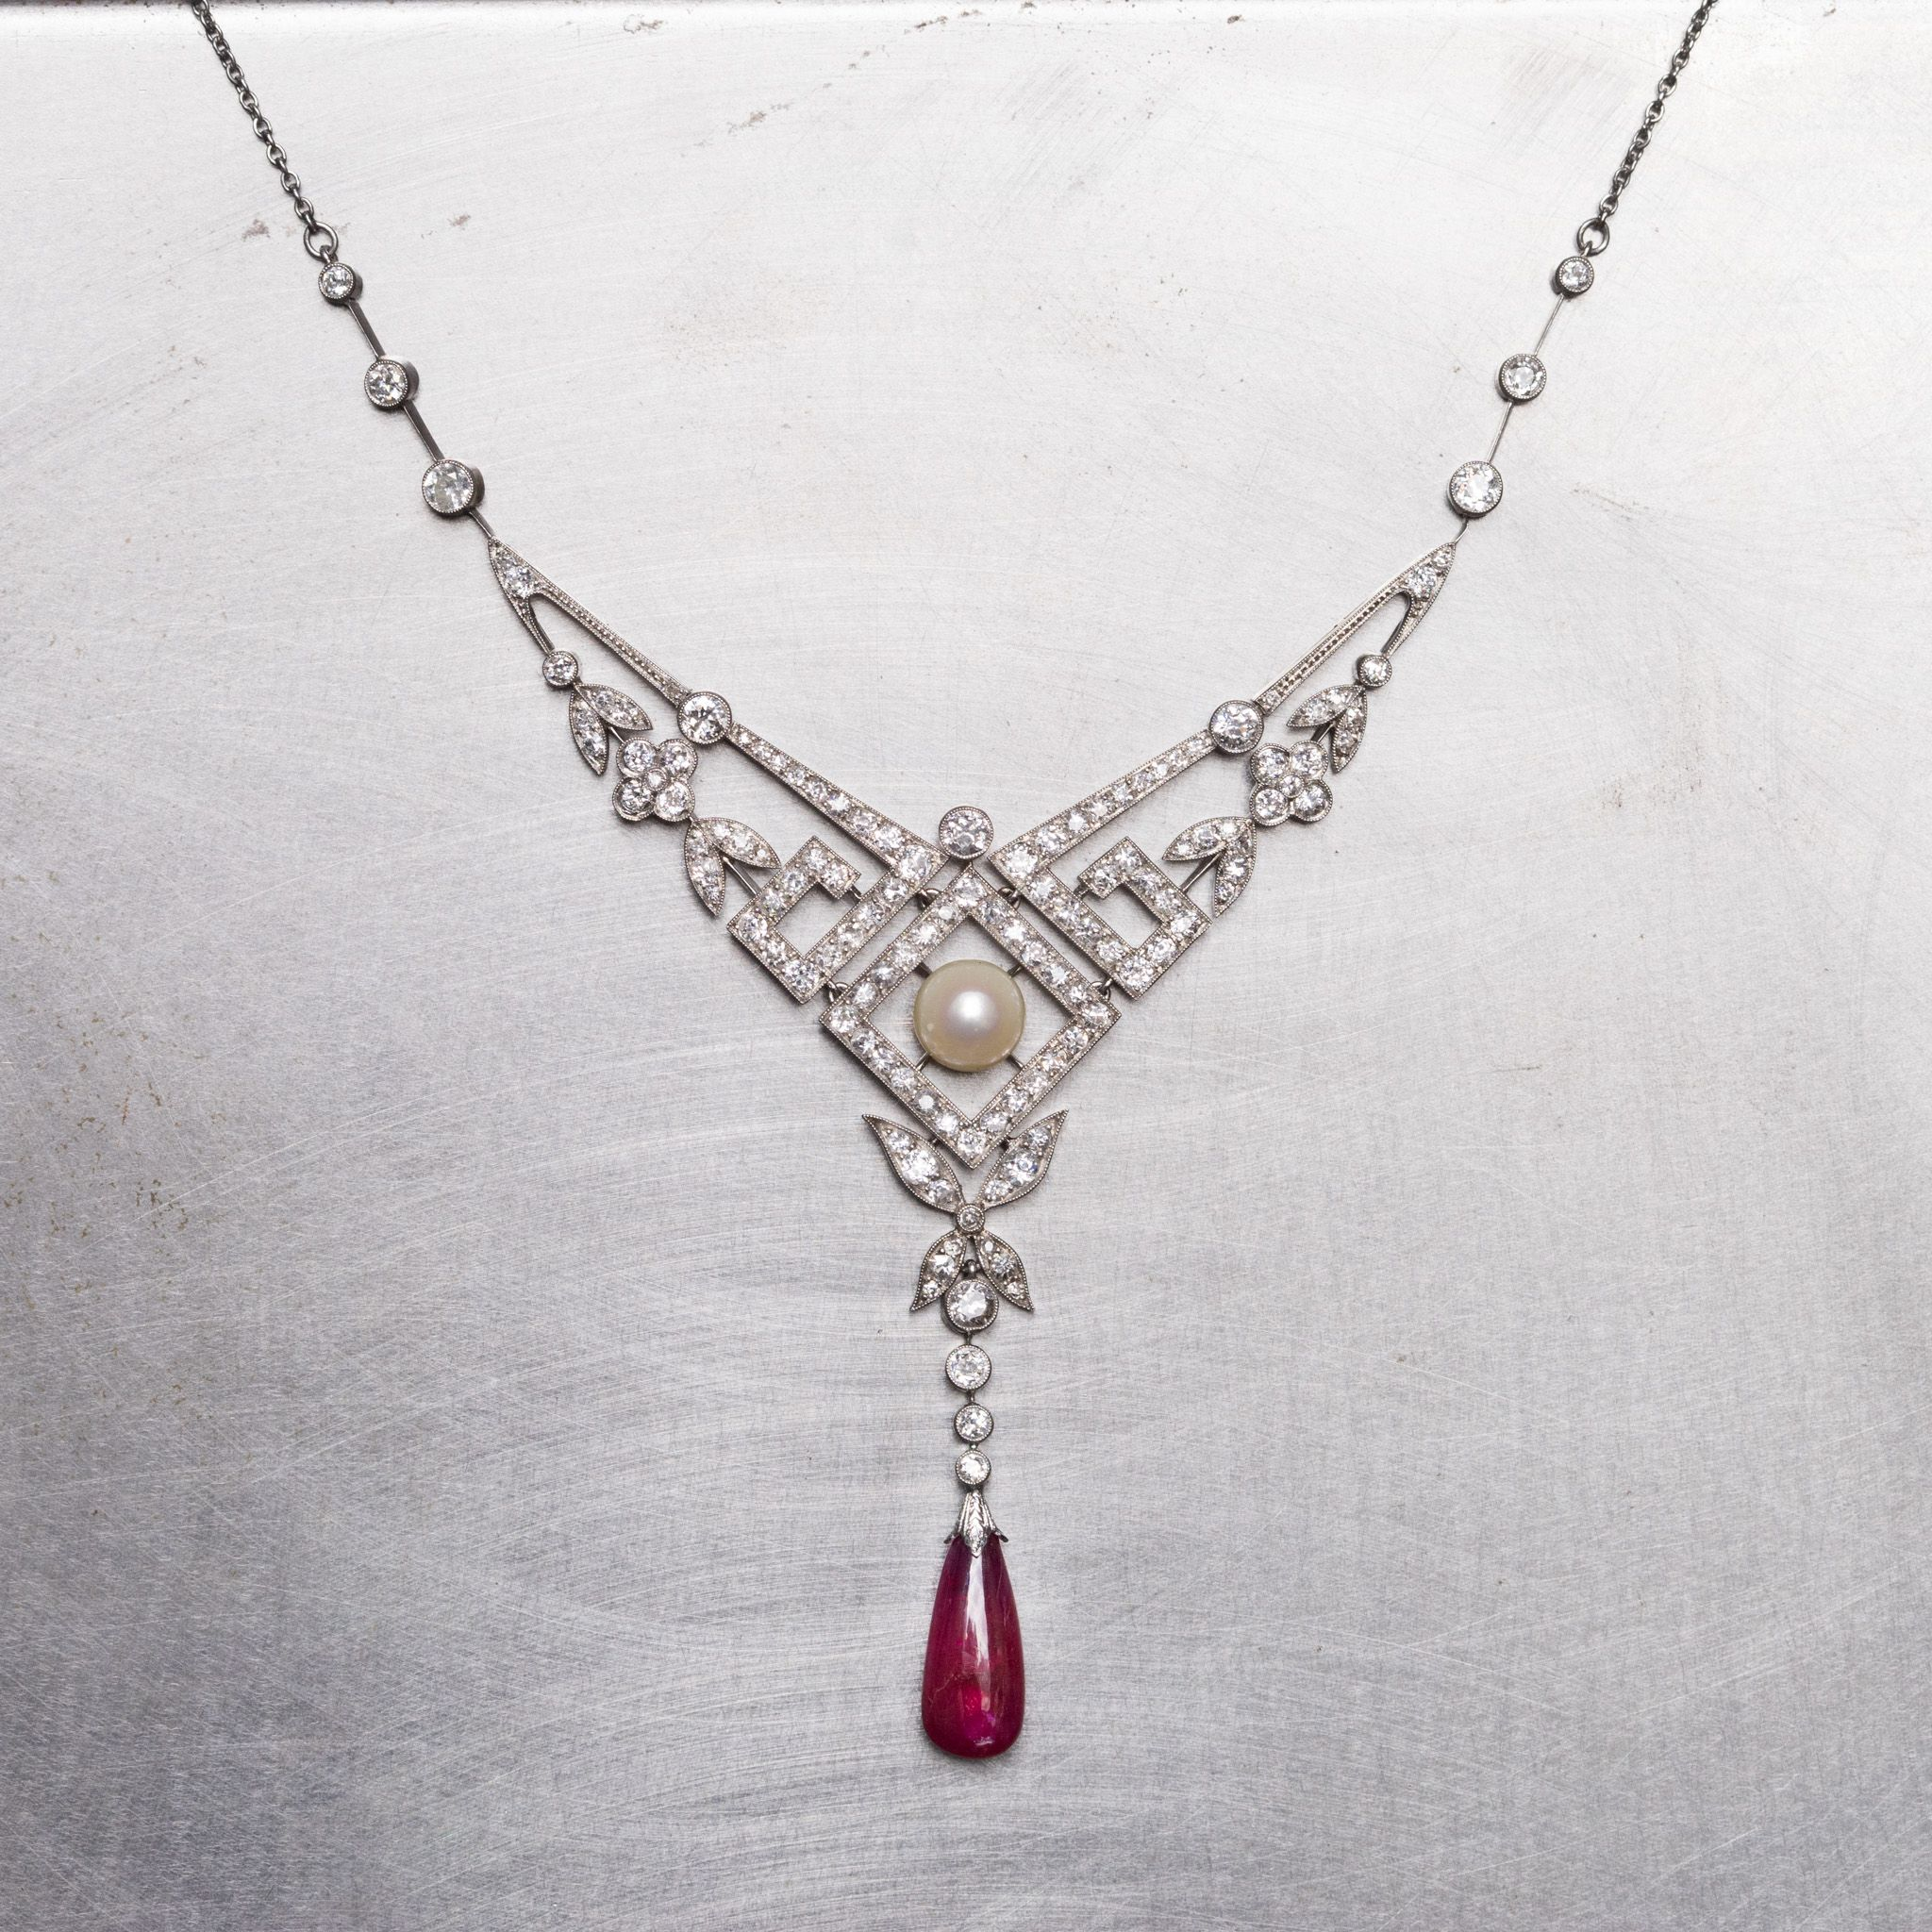 Old cut diamonds. A gorgeous pearl. A drop Burma no heat ruby. All set in a piece that melds elements of nature with geometric patterns. We love everything about this Edwardian necklace.